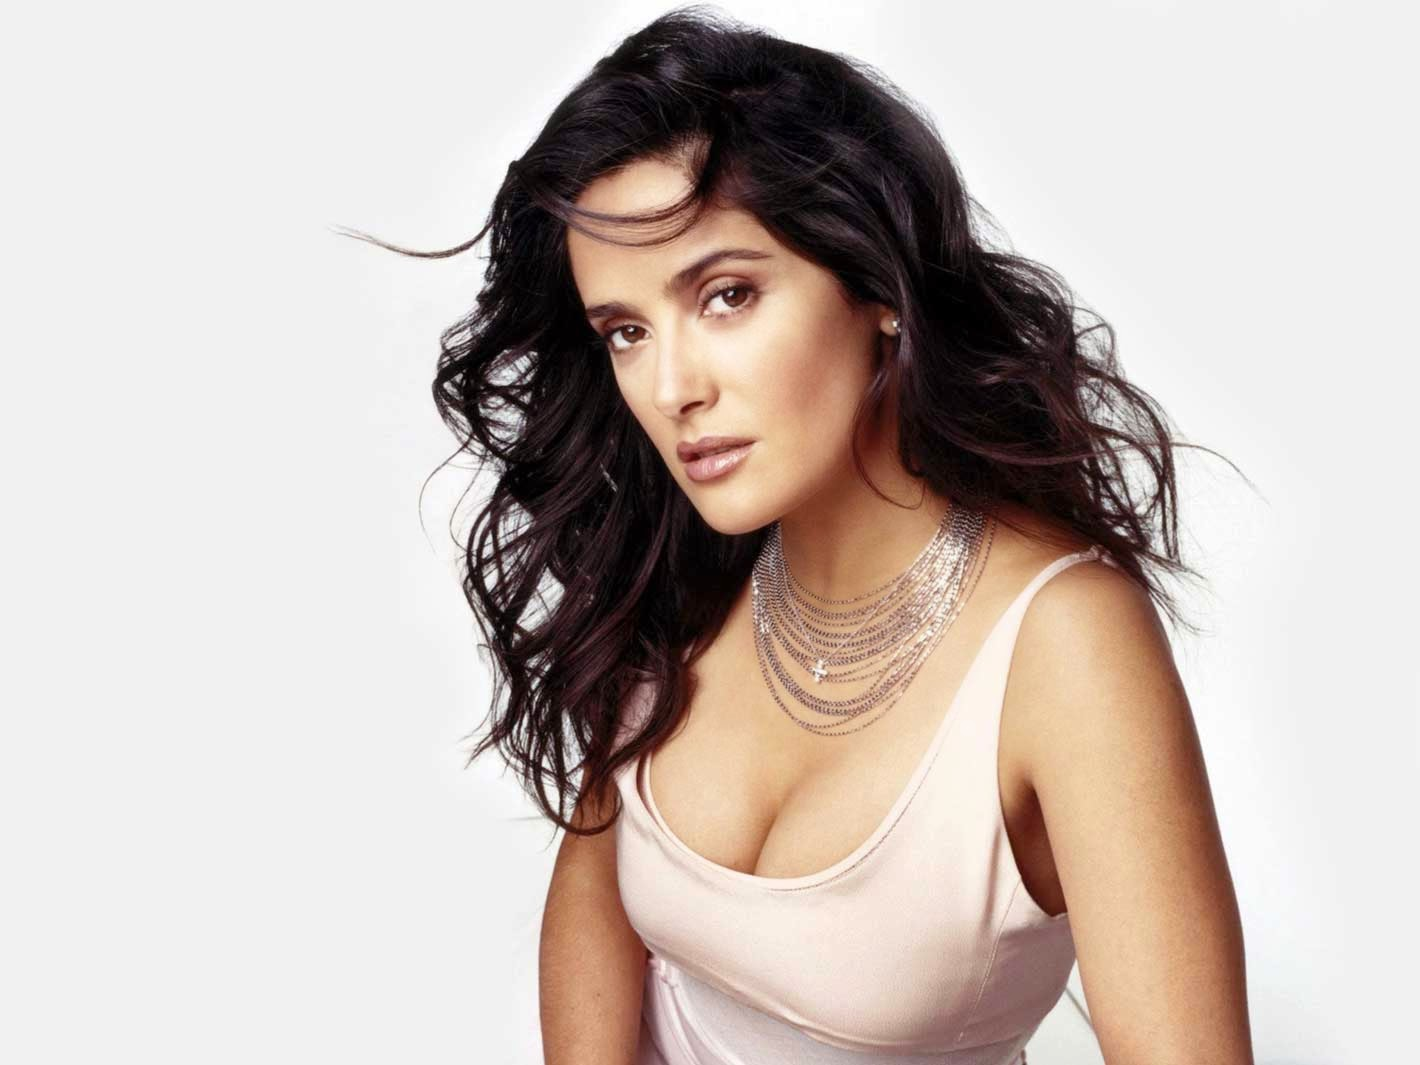 Gorgeous Salma Hayek Wallpaper